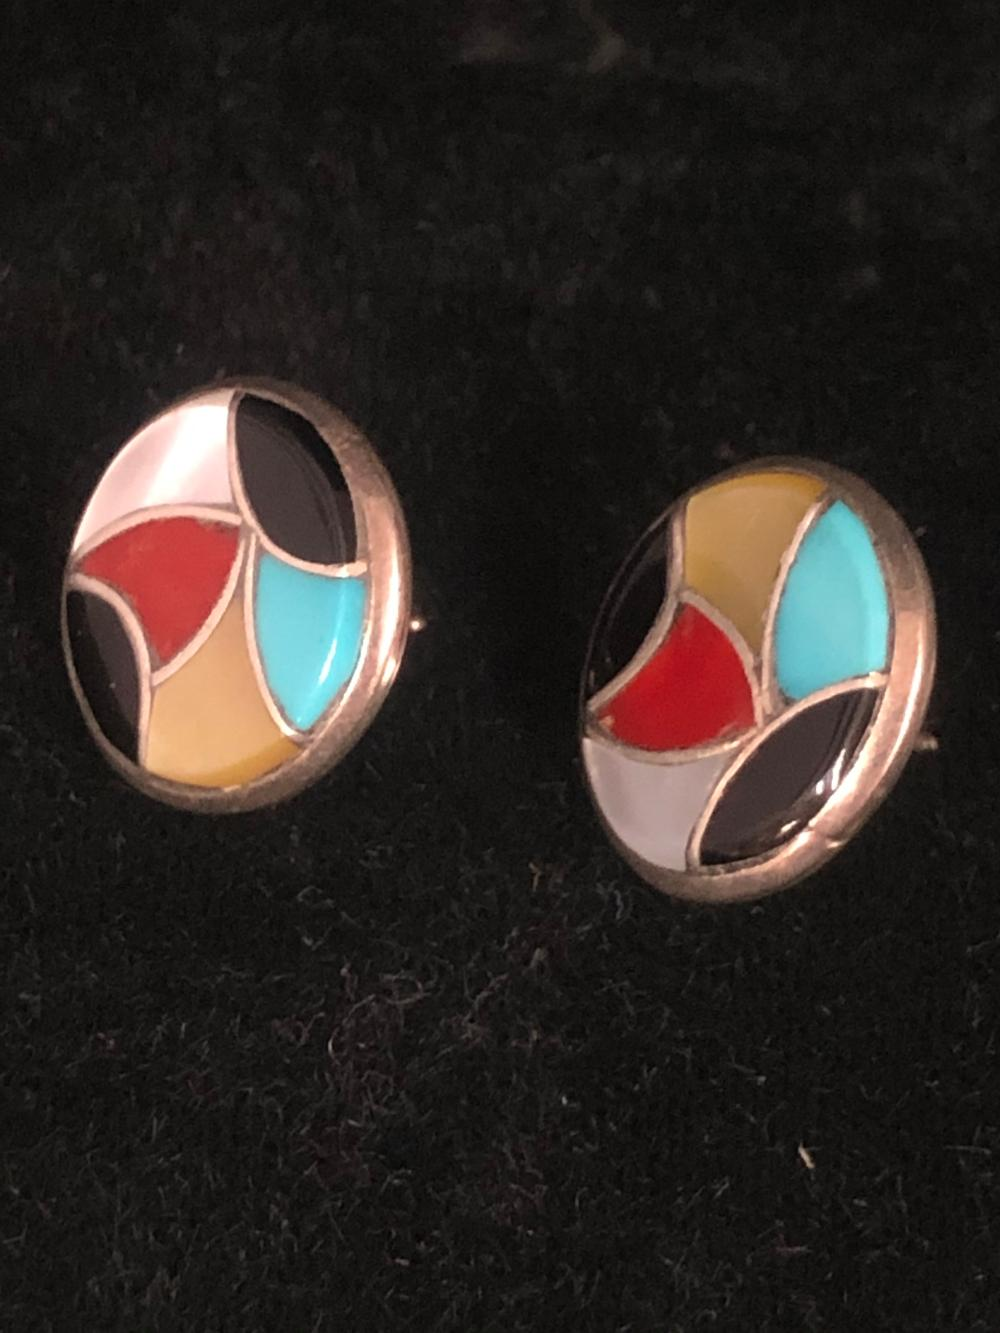 Round sterling silver earrings with inlay stones